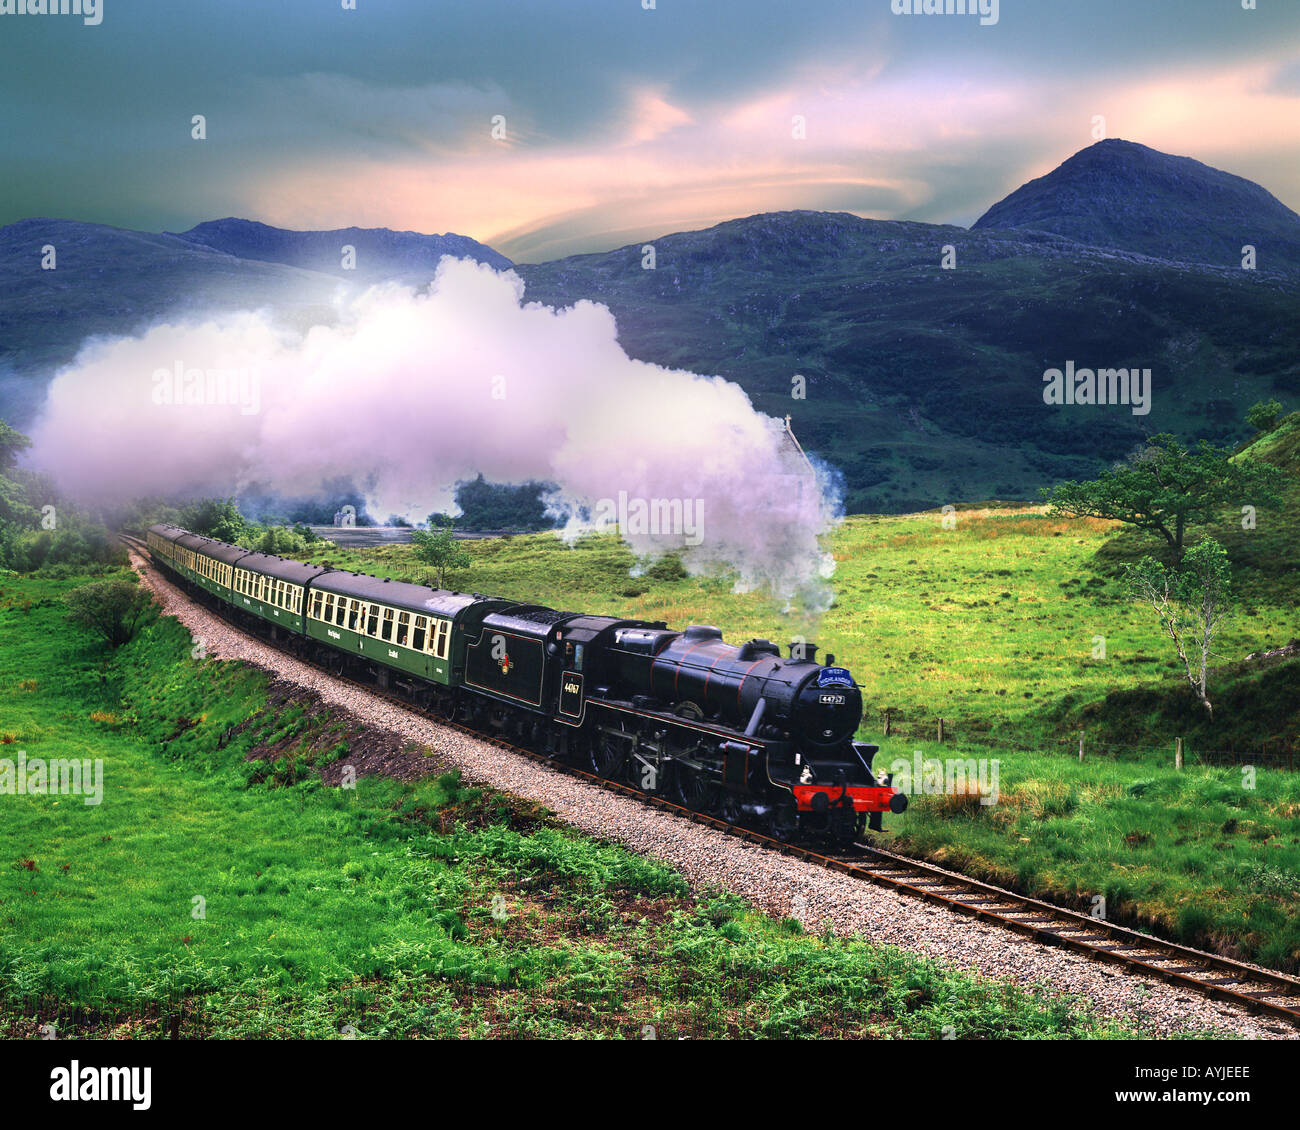 GB - SCOTLAND: 'The Jacobite' Steam Train - Stock Image